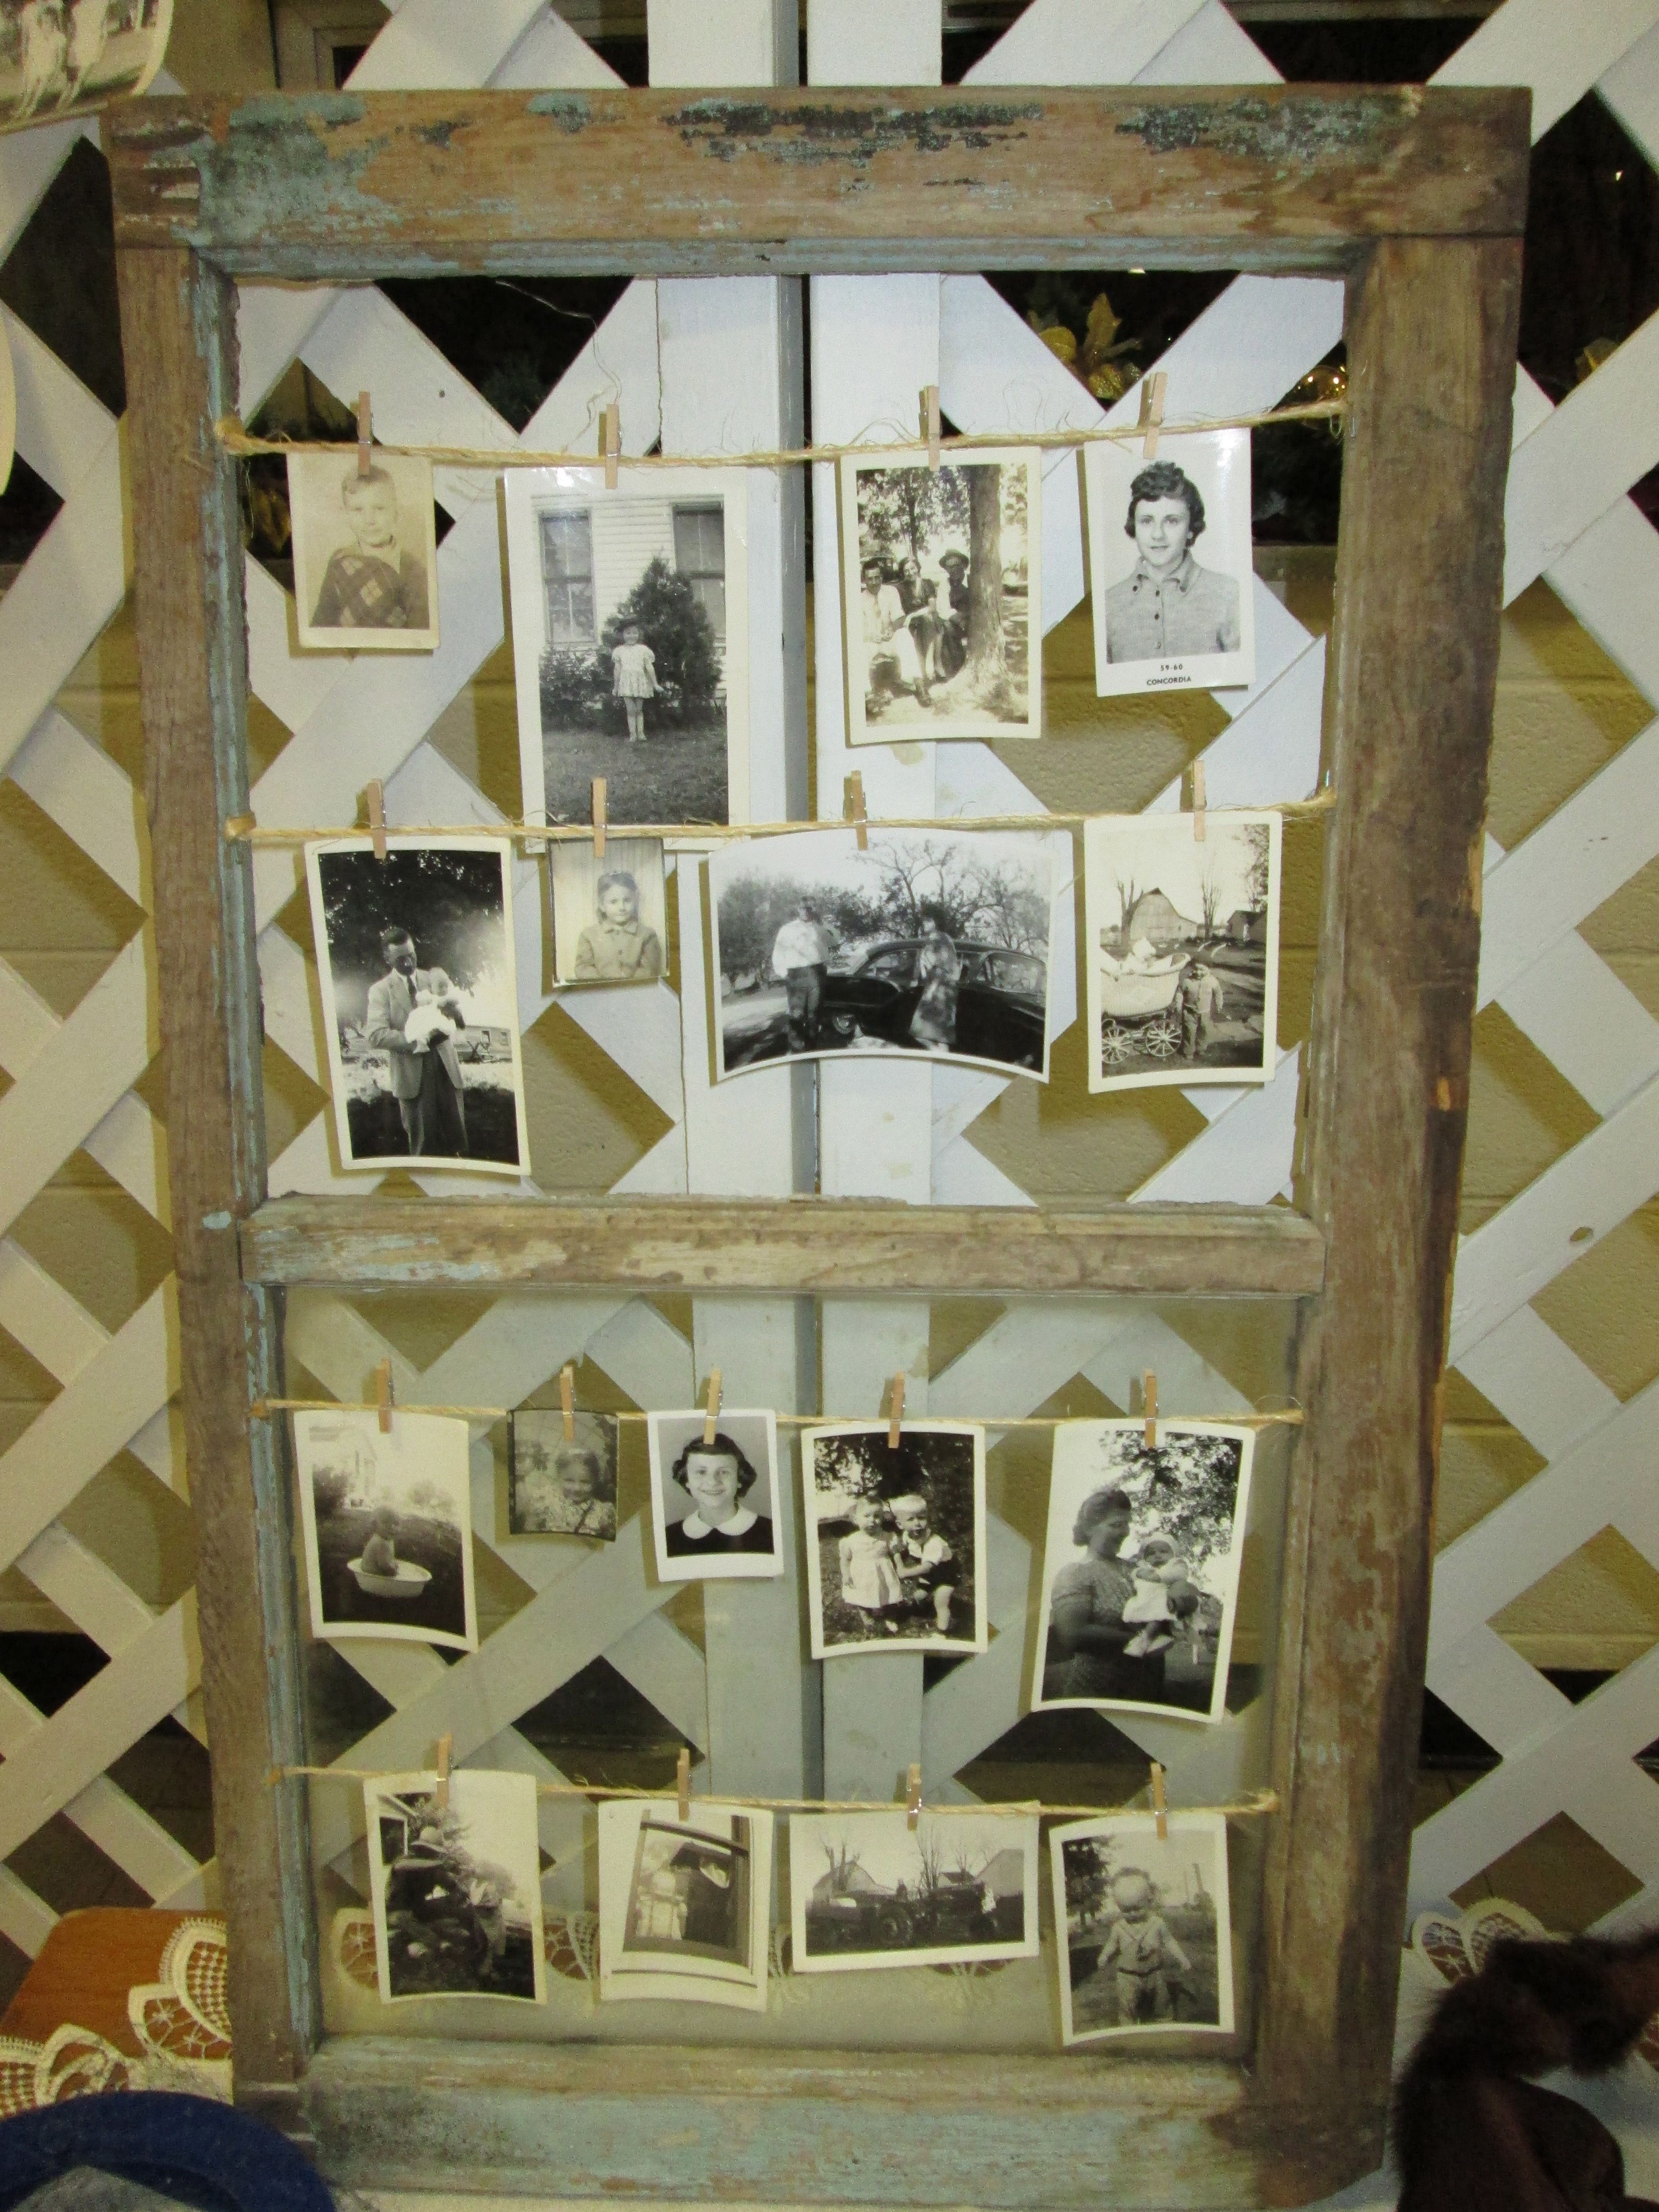 Displaying Old Pictures With Old Window, Twine And Mini